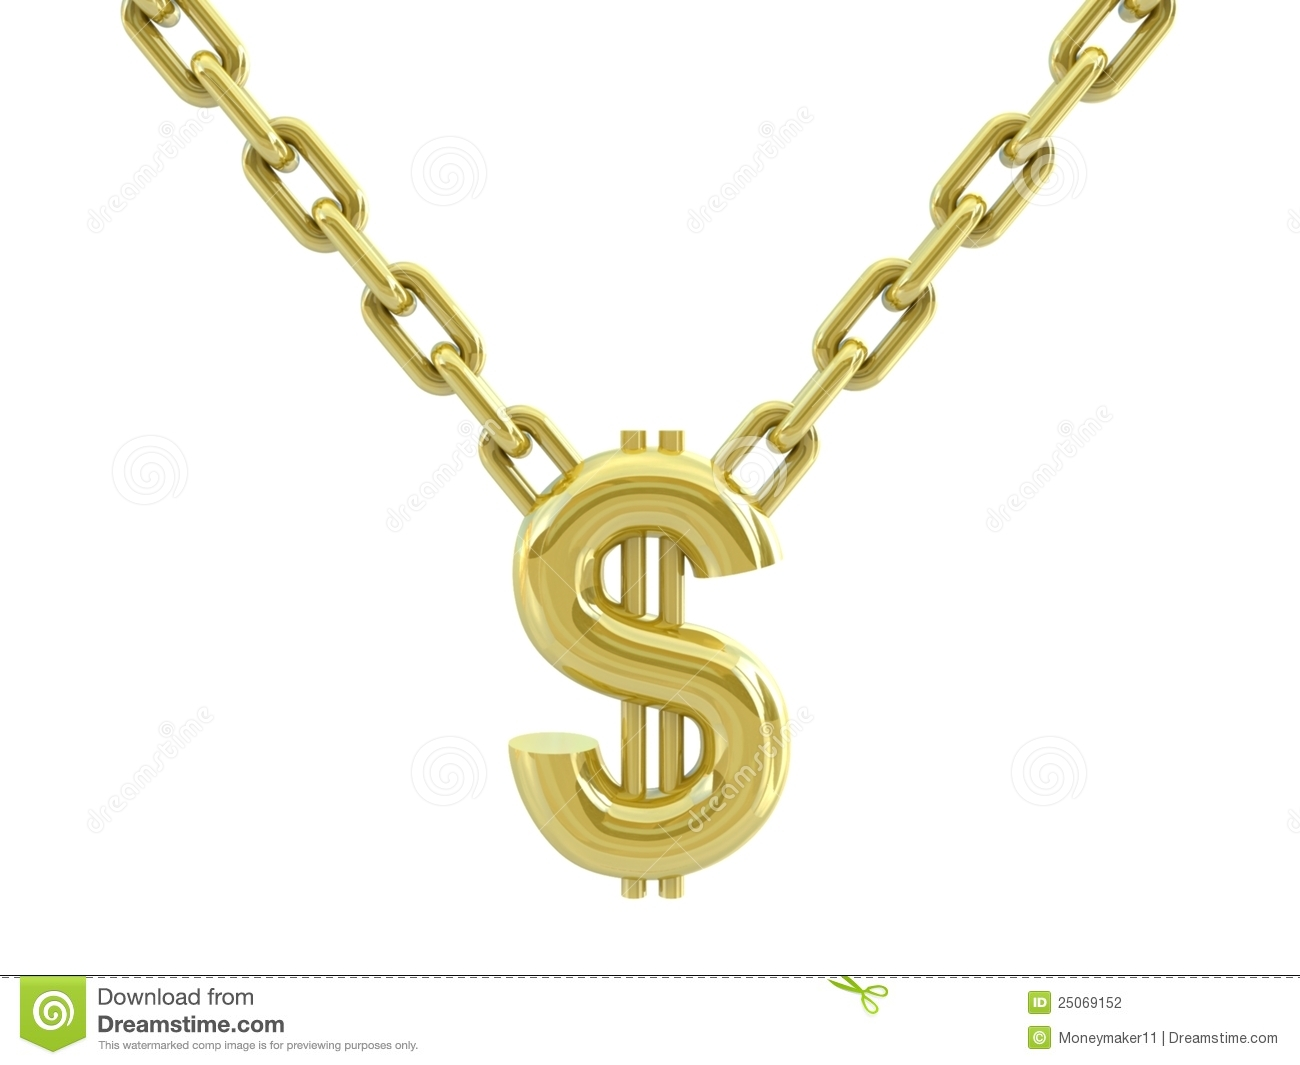 Gold chains gangsta